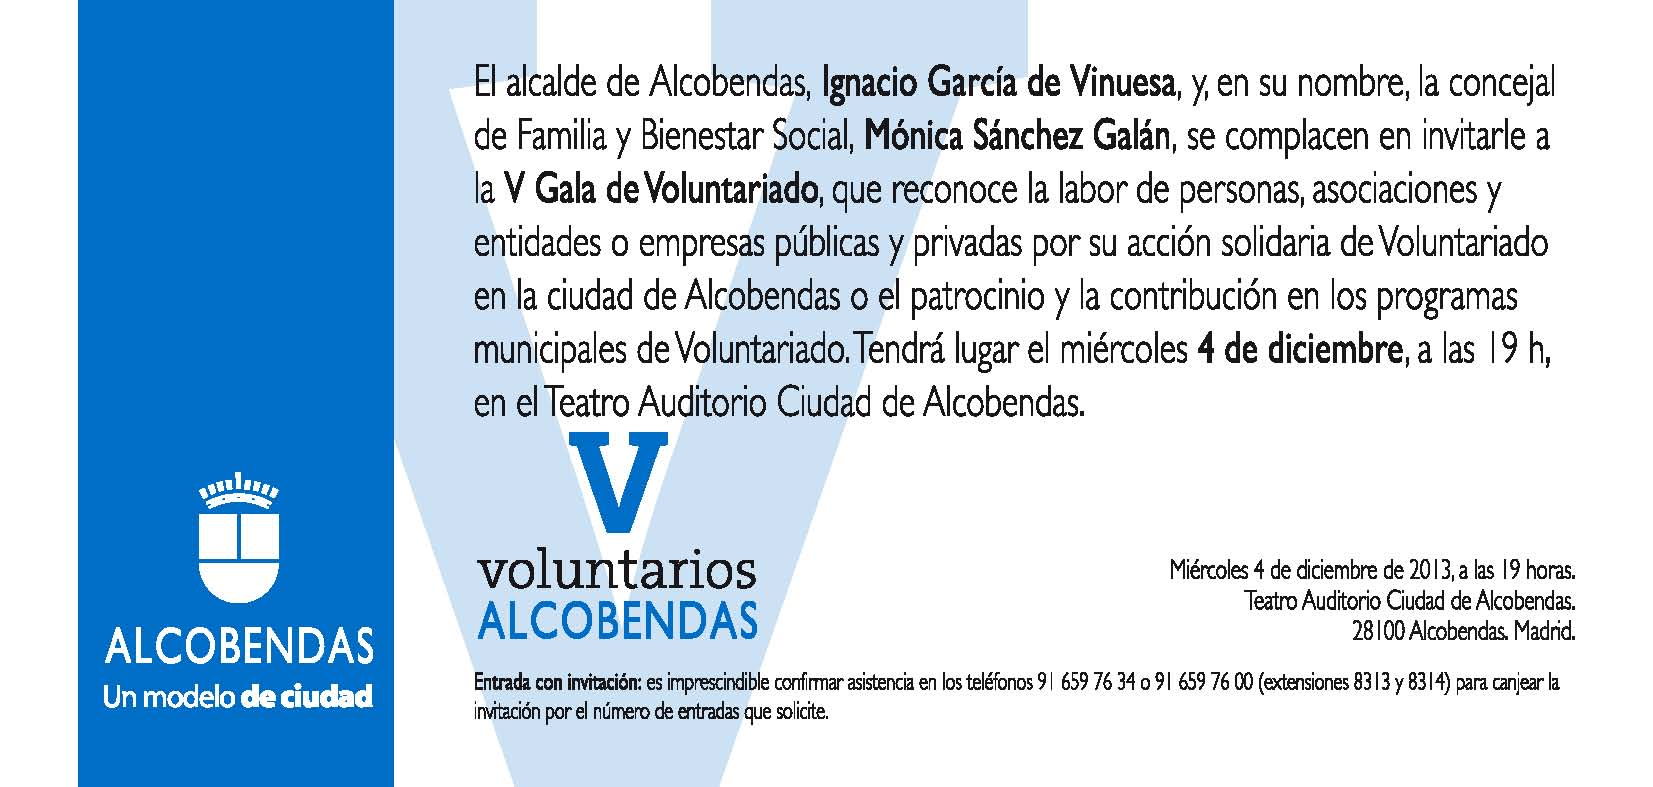 Invitacion V Gala Voluntario 2013 ASACO